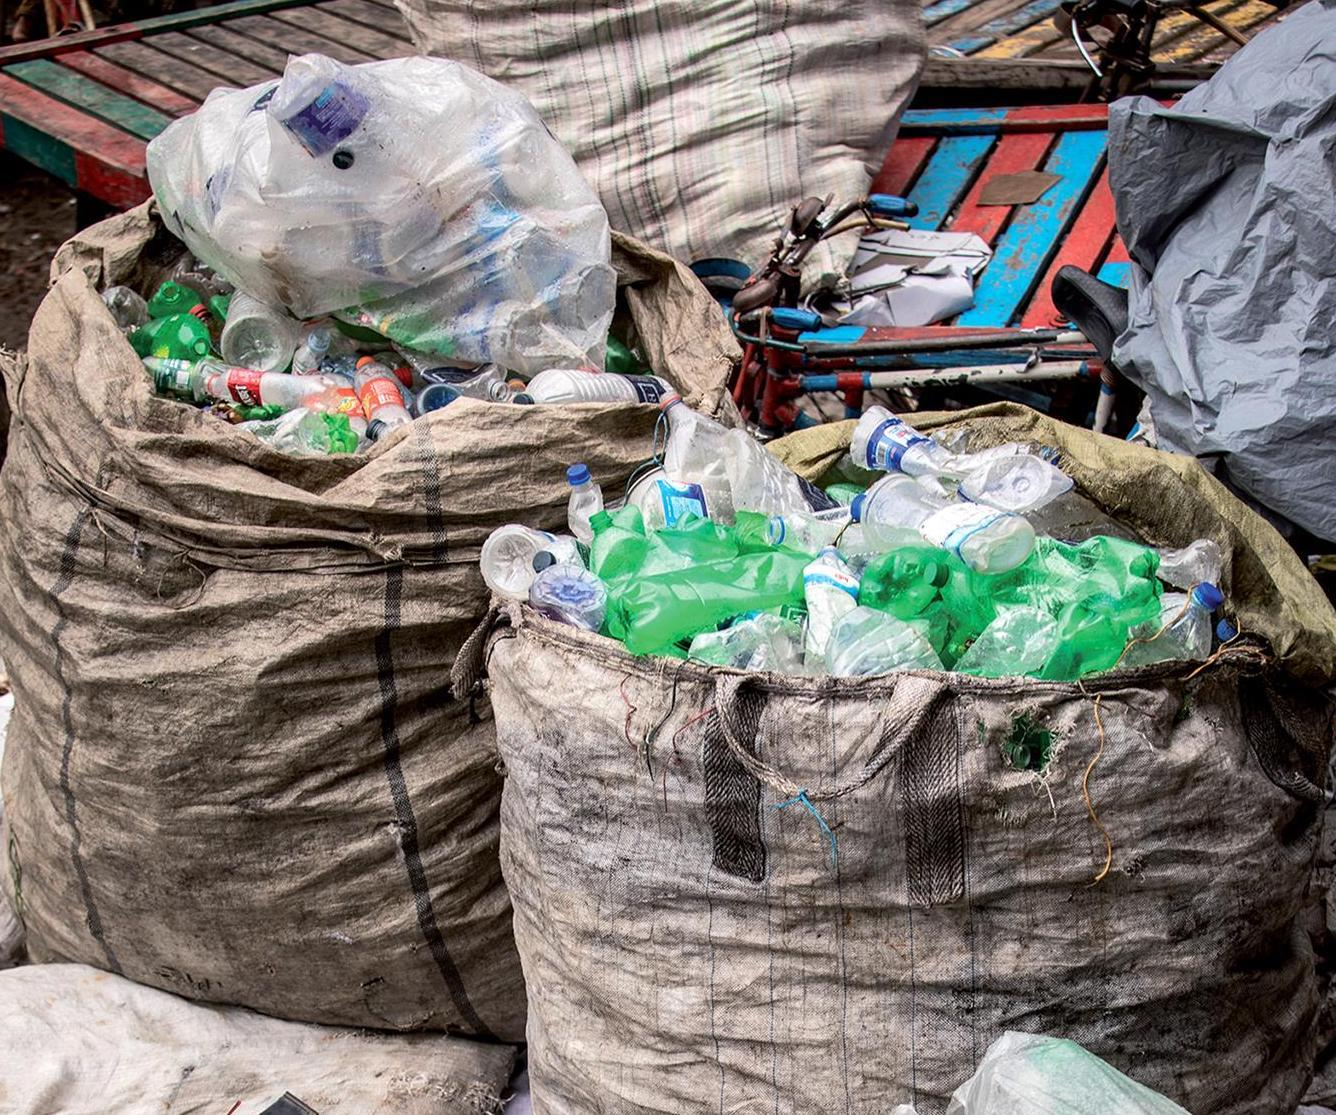 UK plastics pact is promising but there is a long way to go